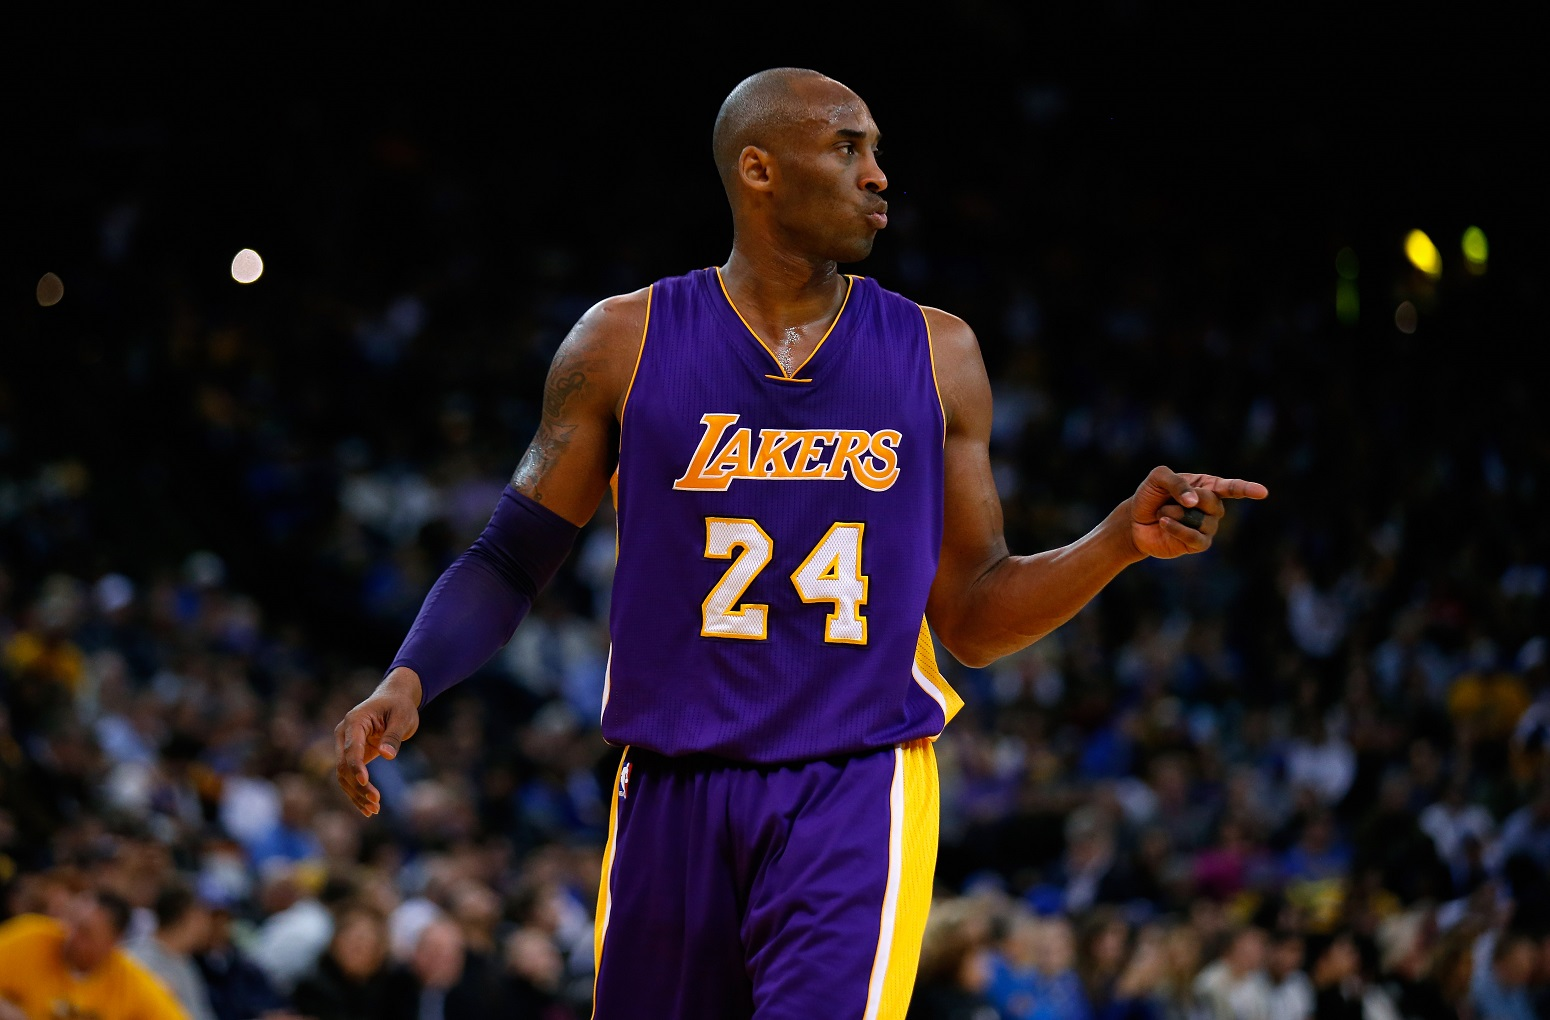 Kobe Bryant unmistakable reason No. 24 Lakers